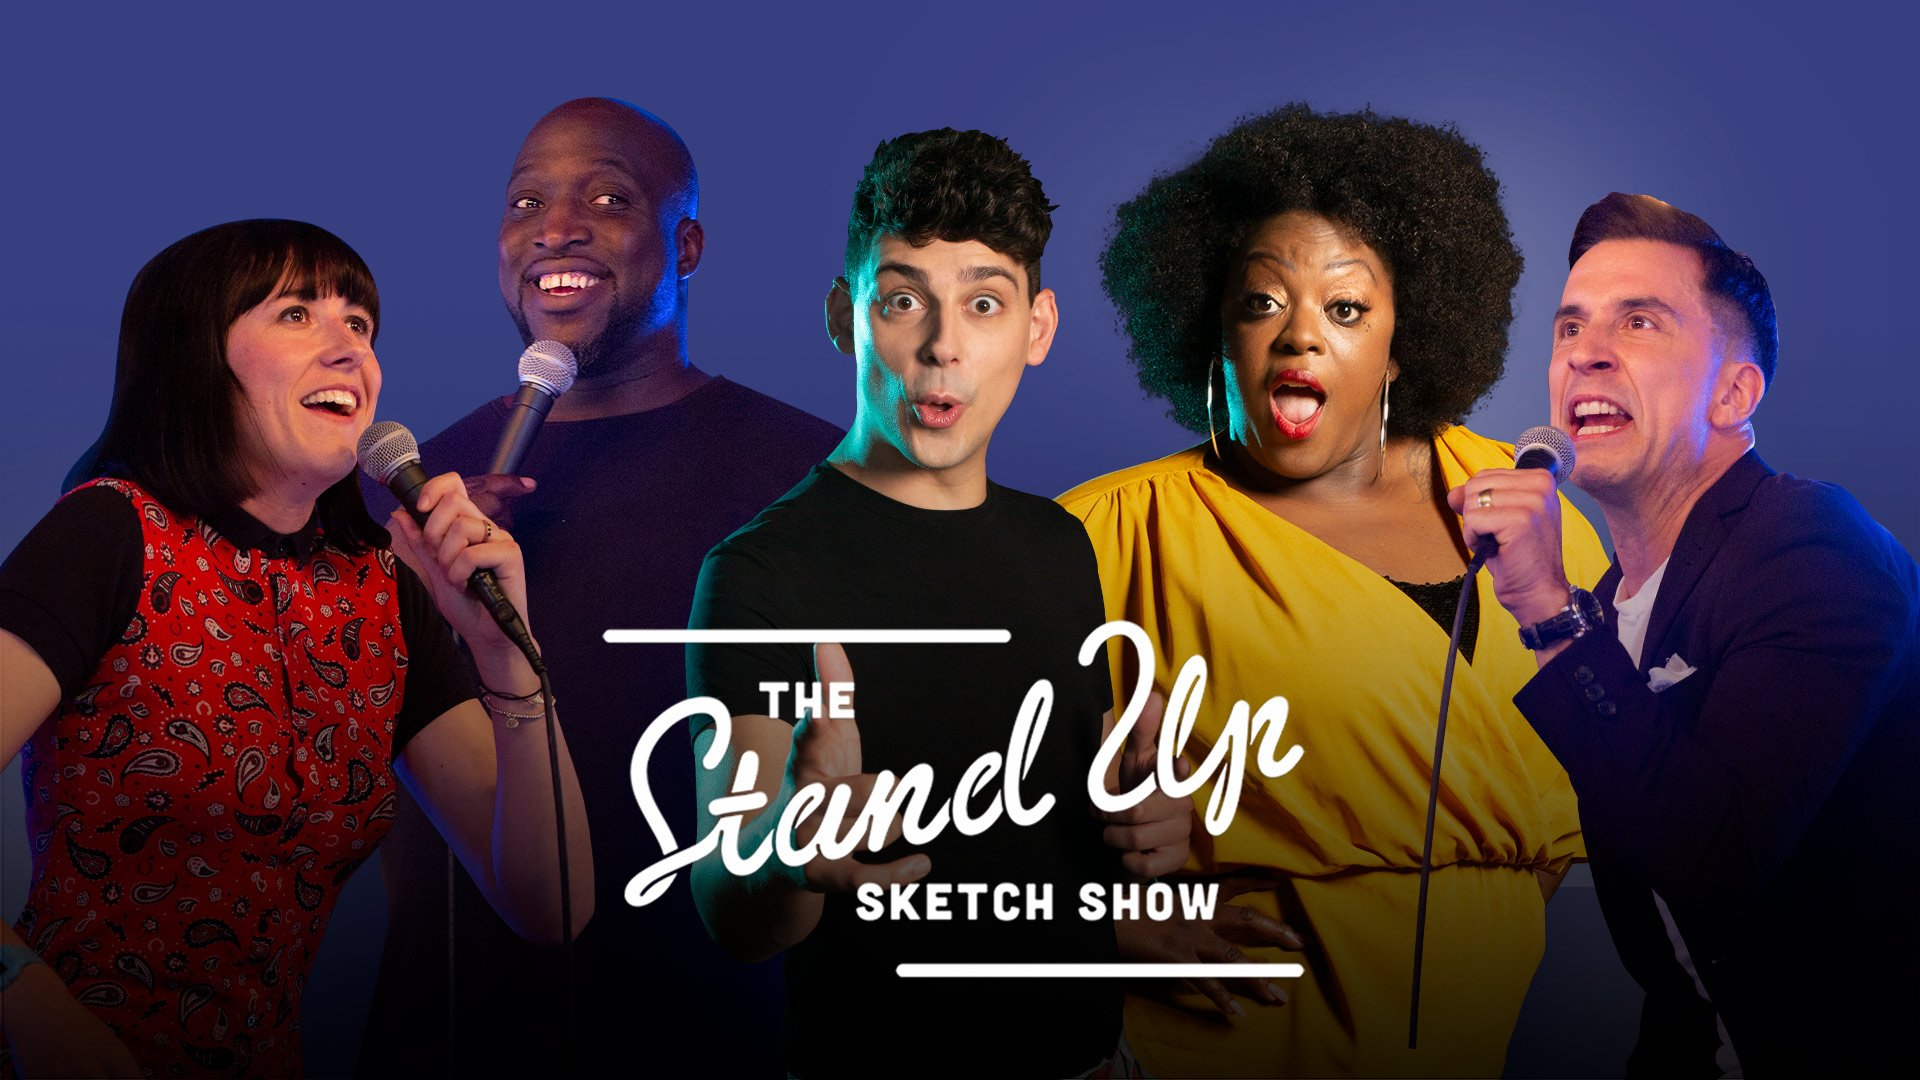 The Stand Up Sketch Show on BritBox UK